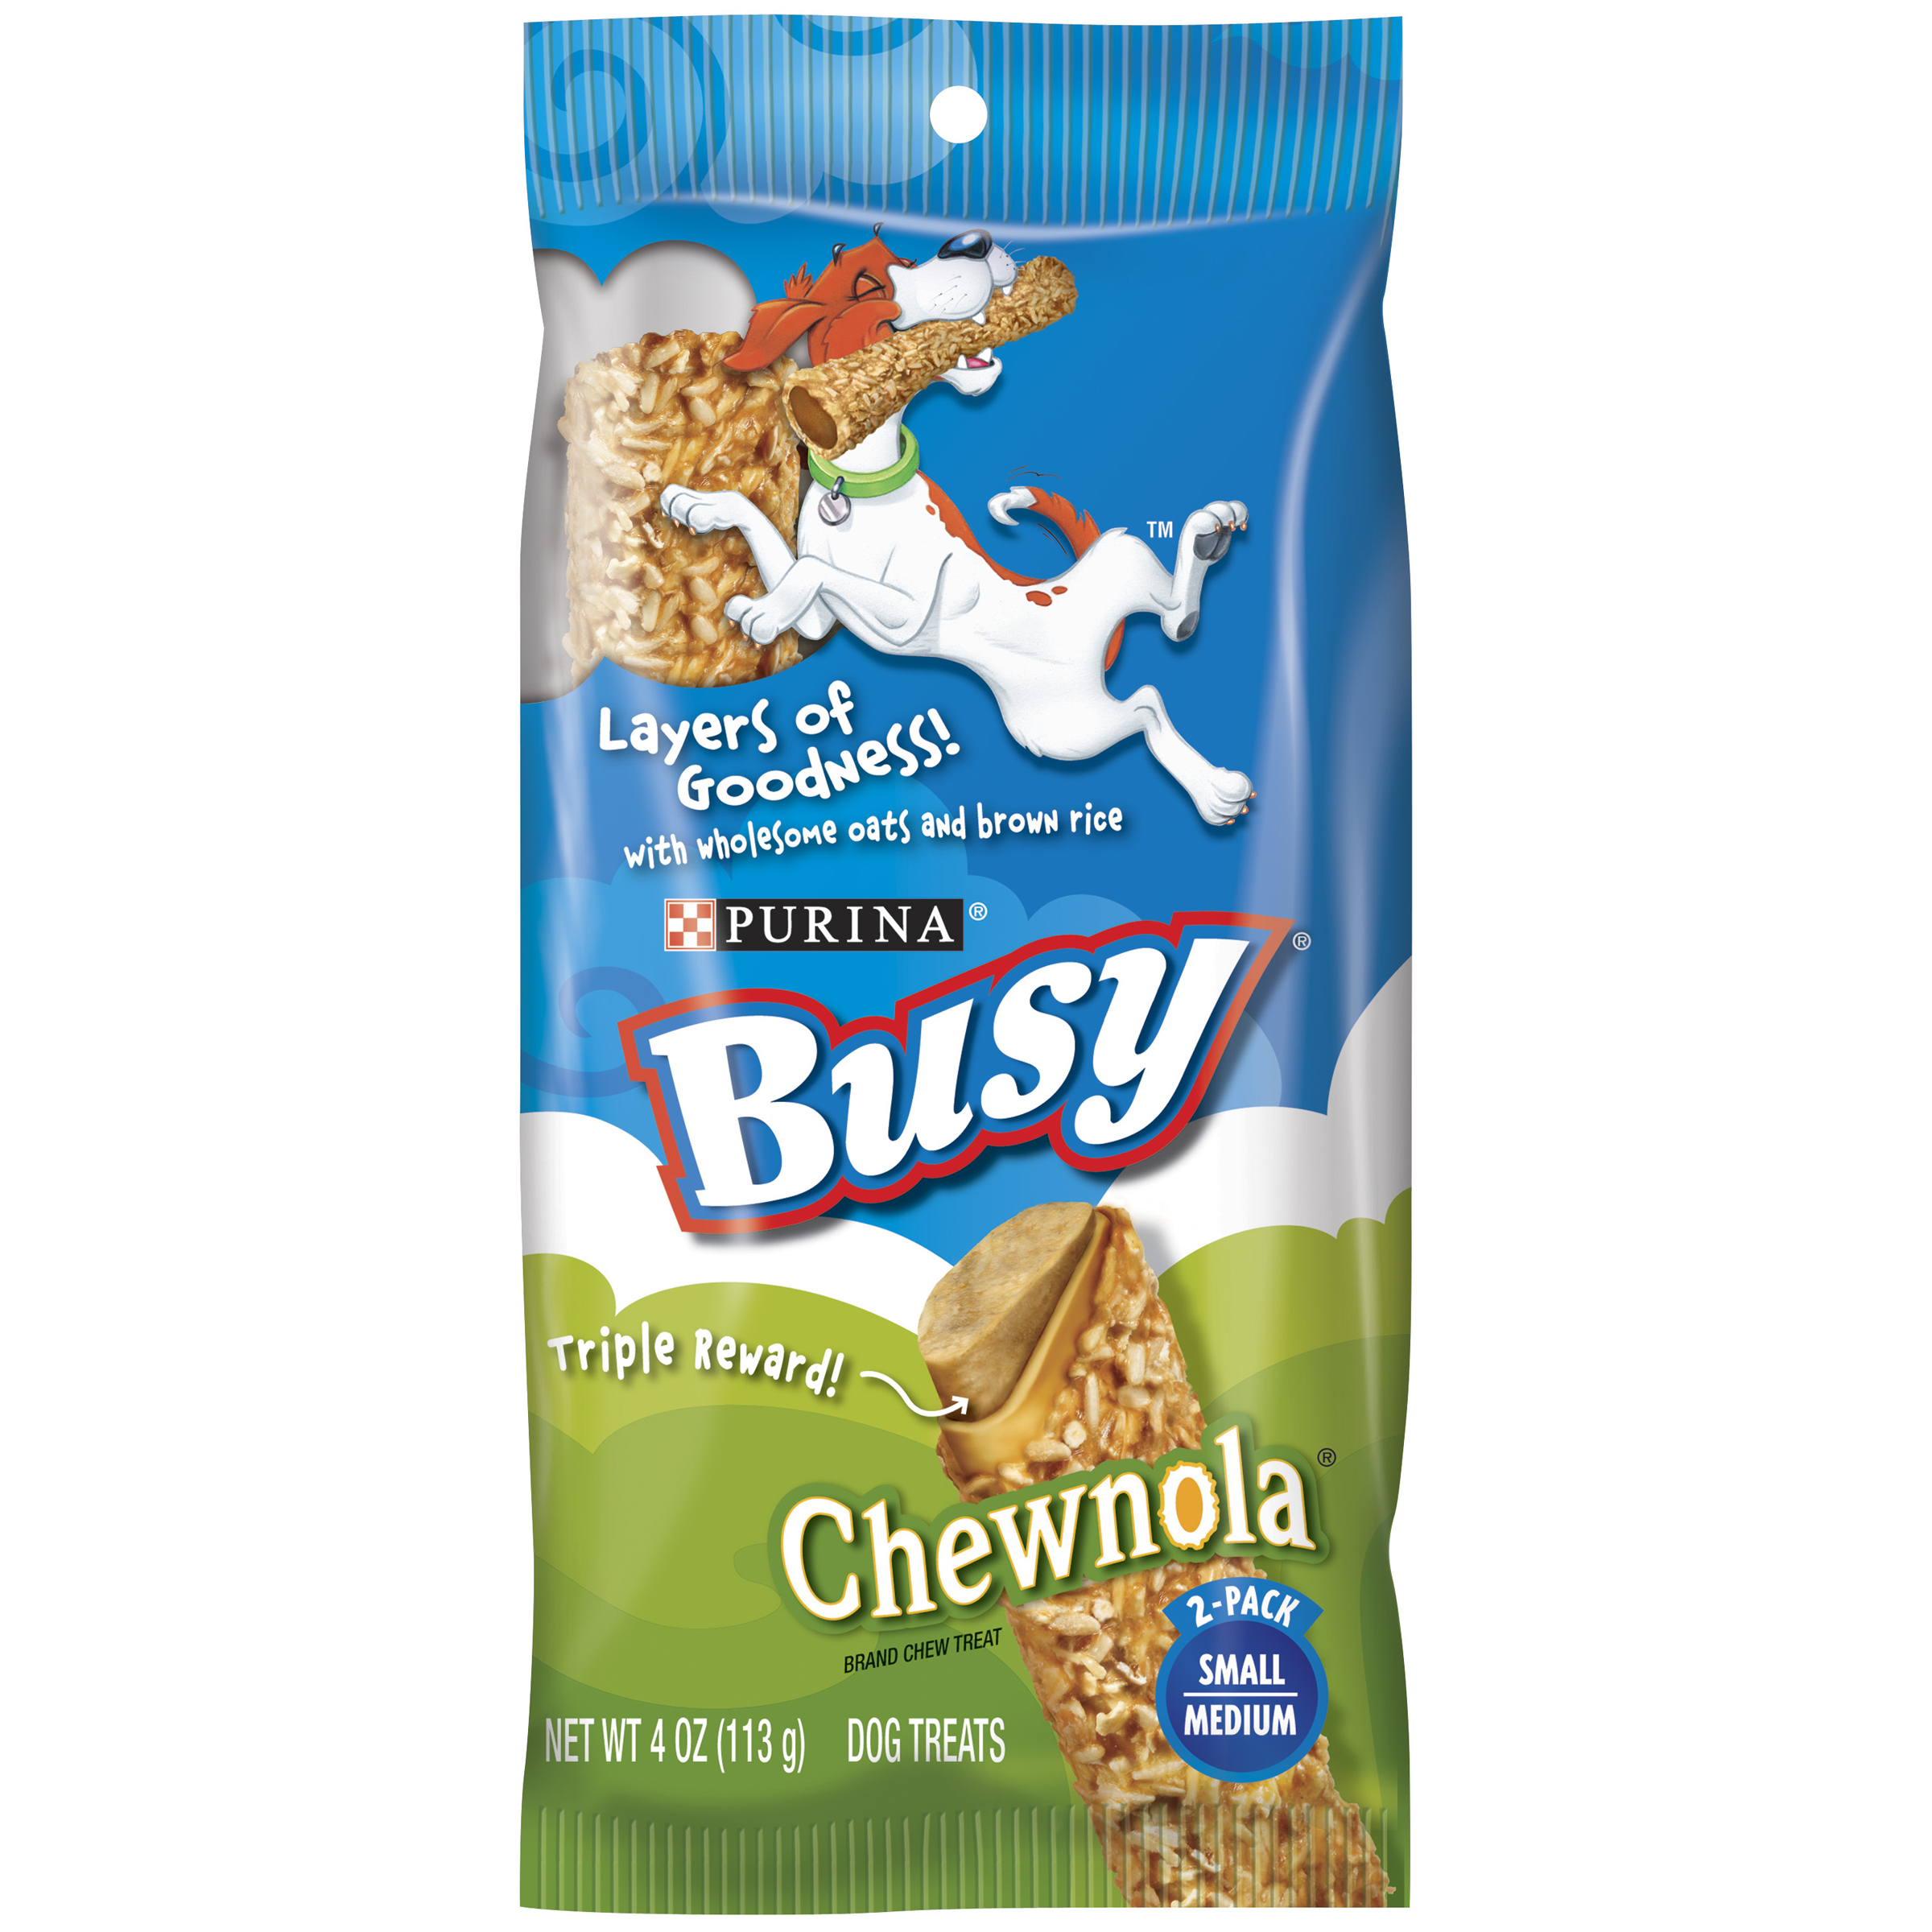 Purina Busy Chewnola Small/Medium Dog Treats 2 ct Pouch